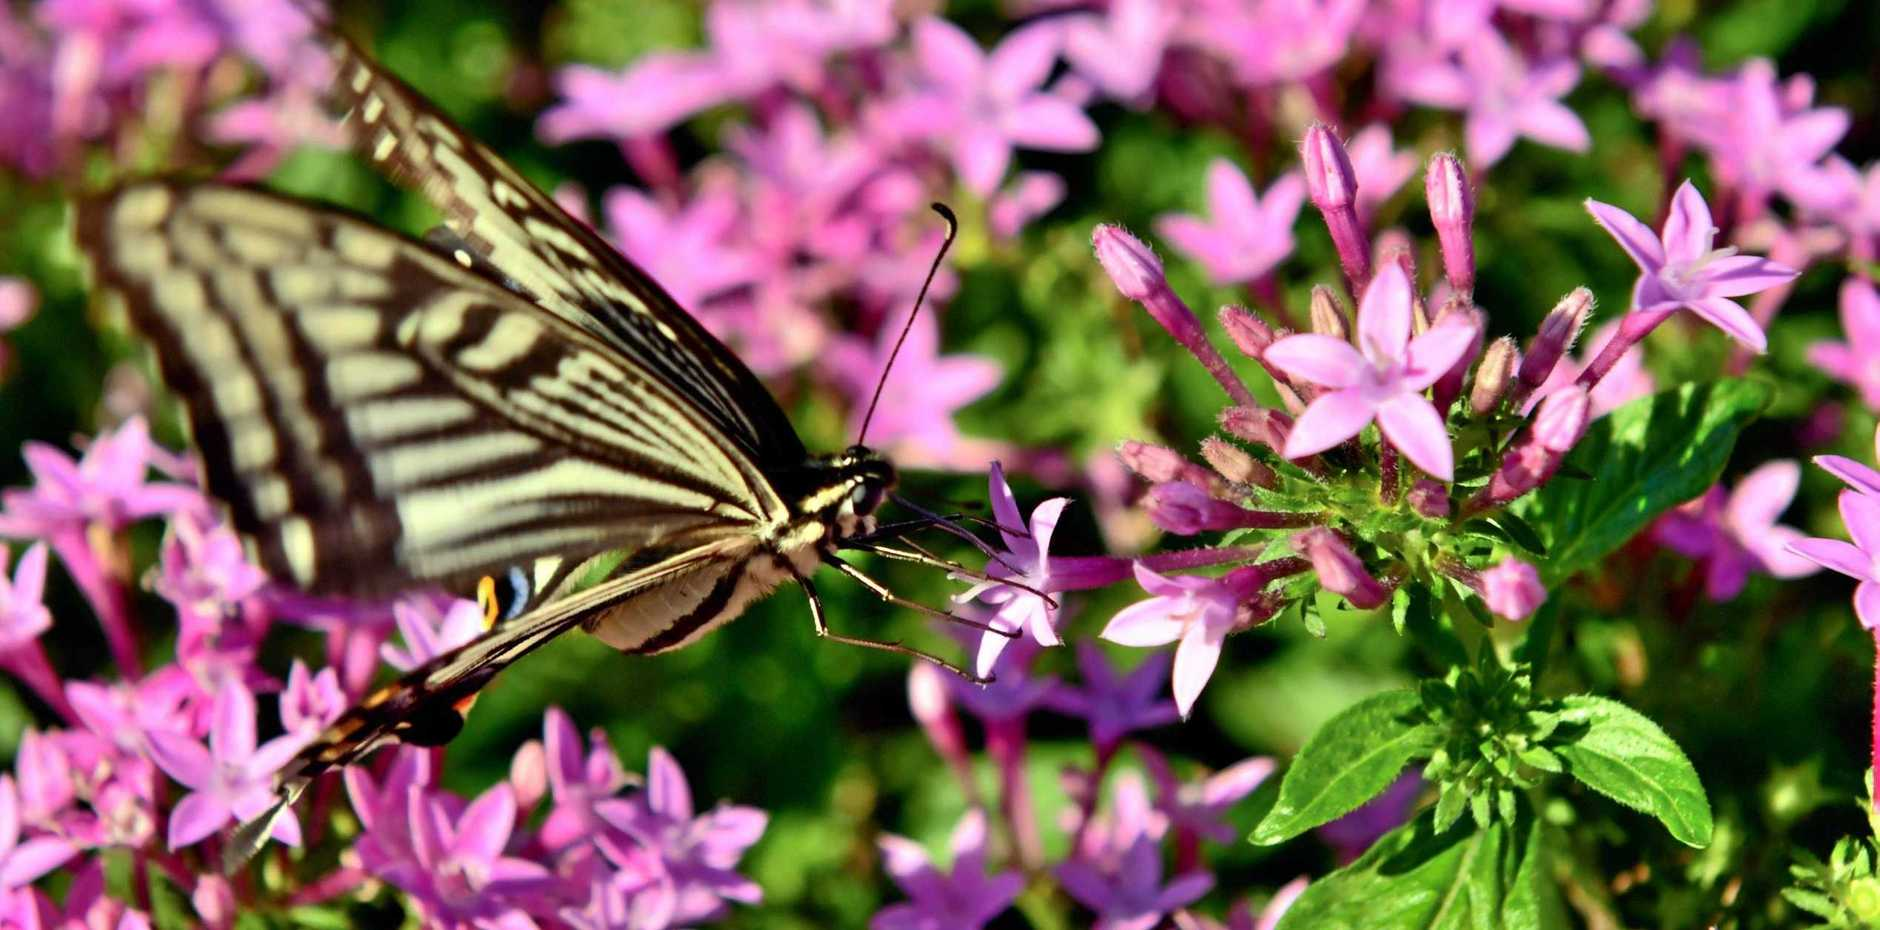 Pentas plants attract butterflies and bees.